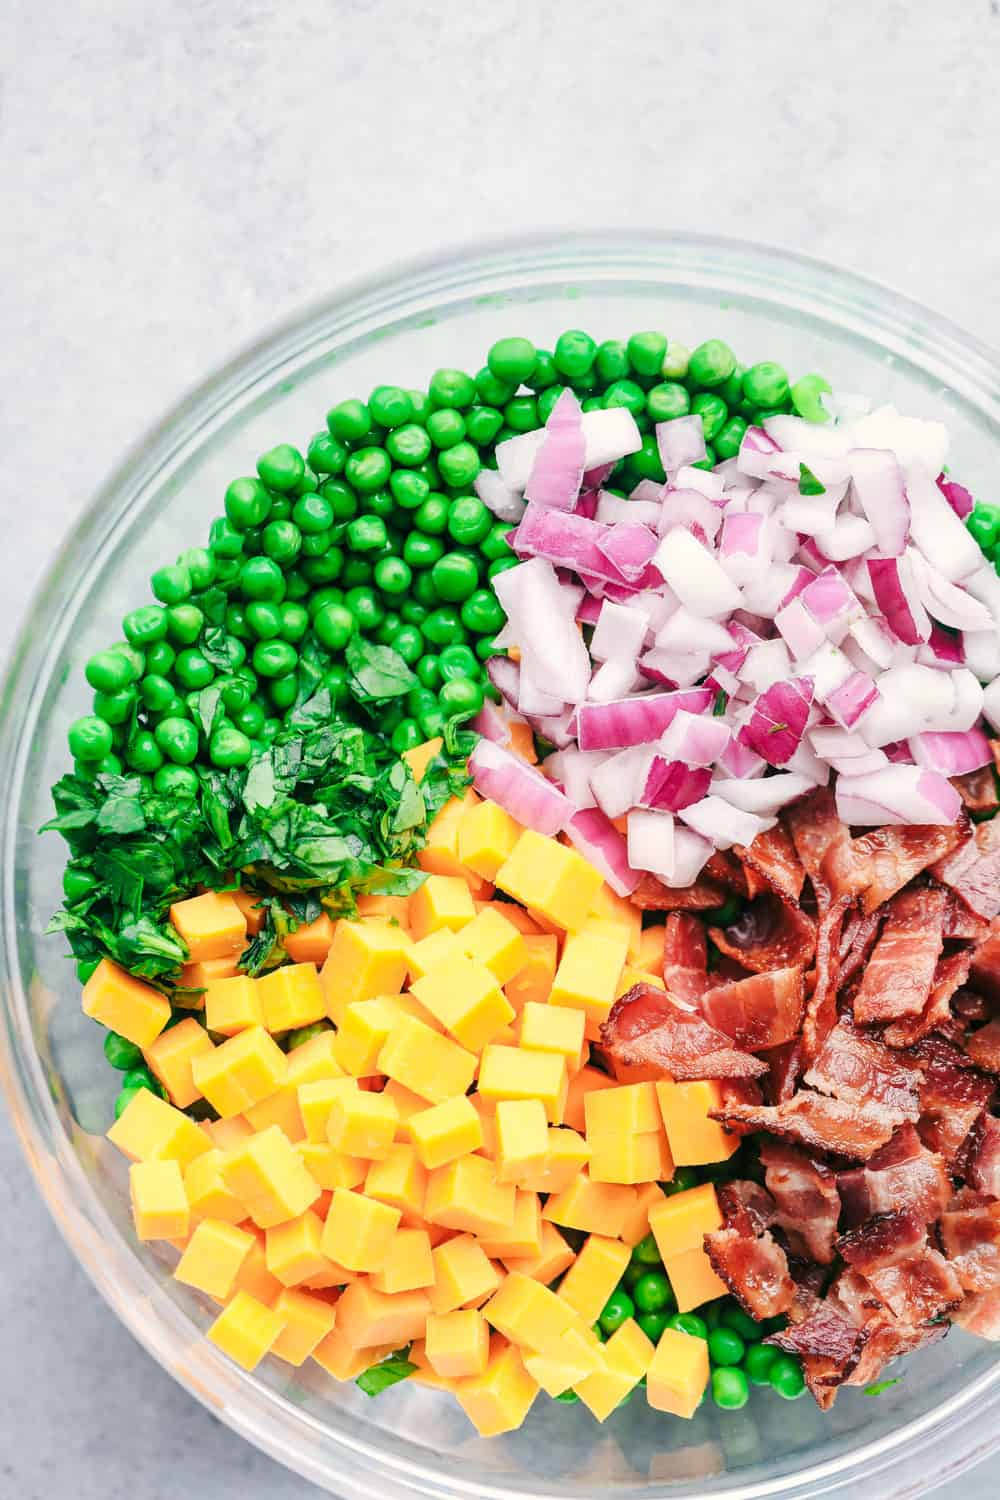 Creamy Pea Salad with Bacon ingredients before they are mixed together in a bowl.